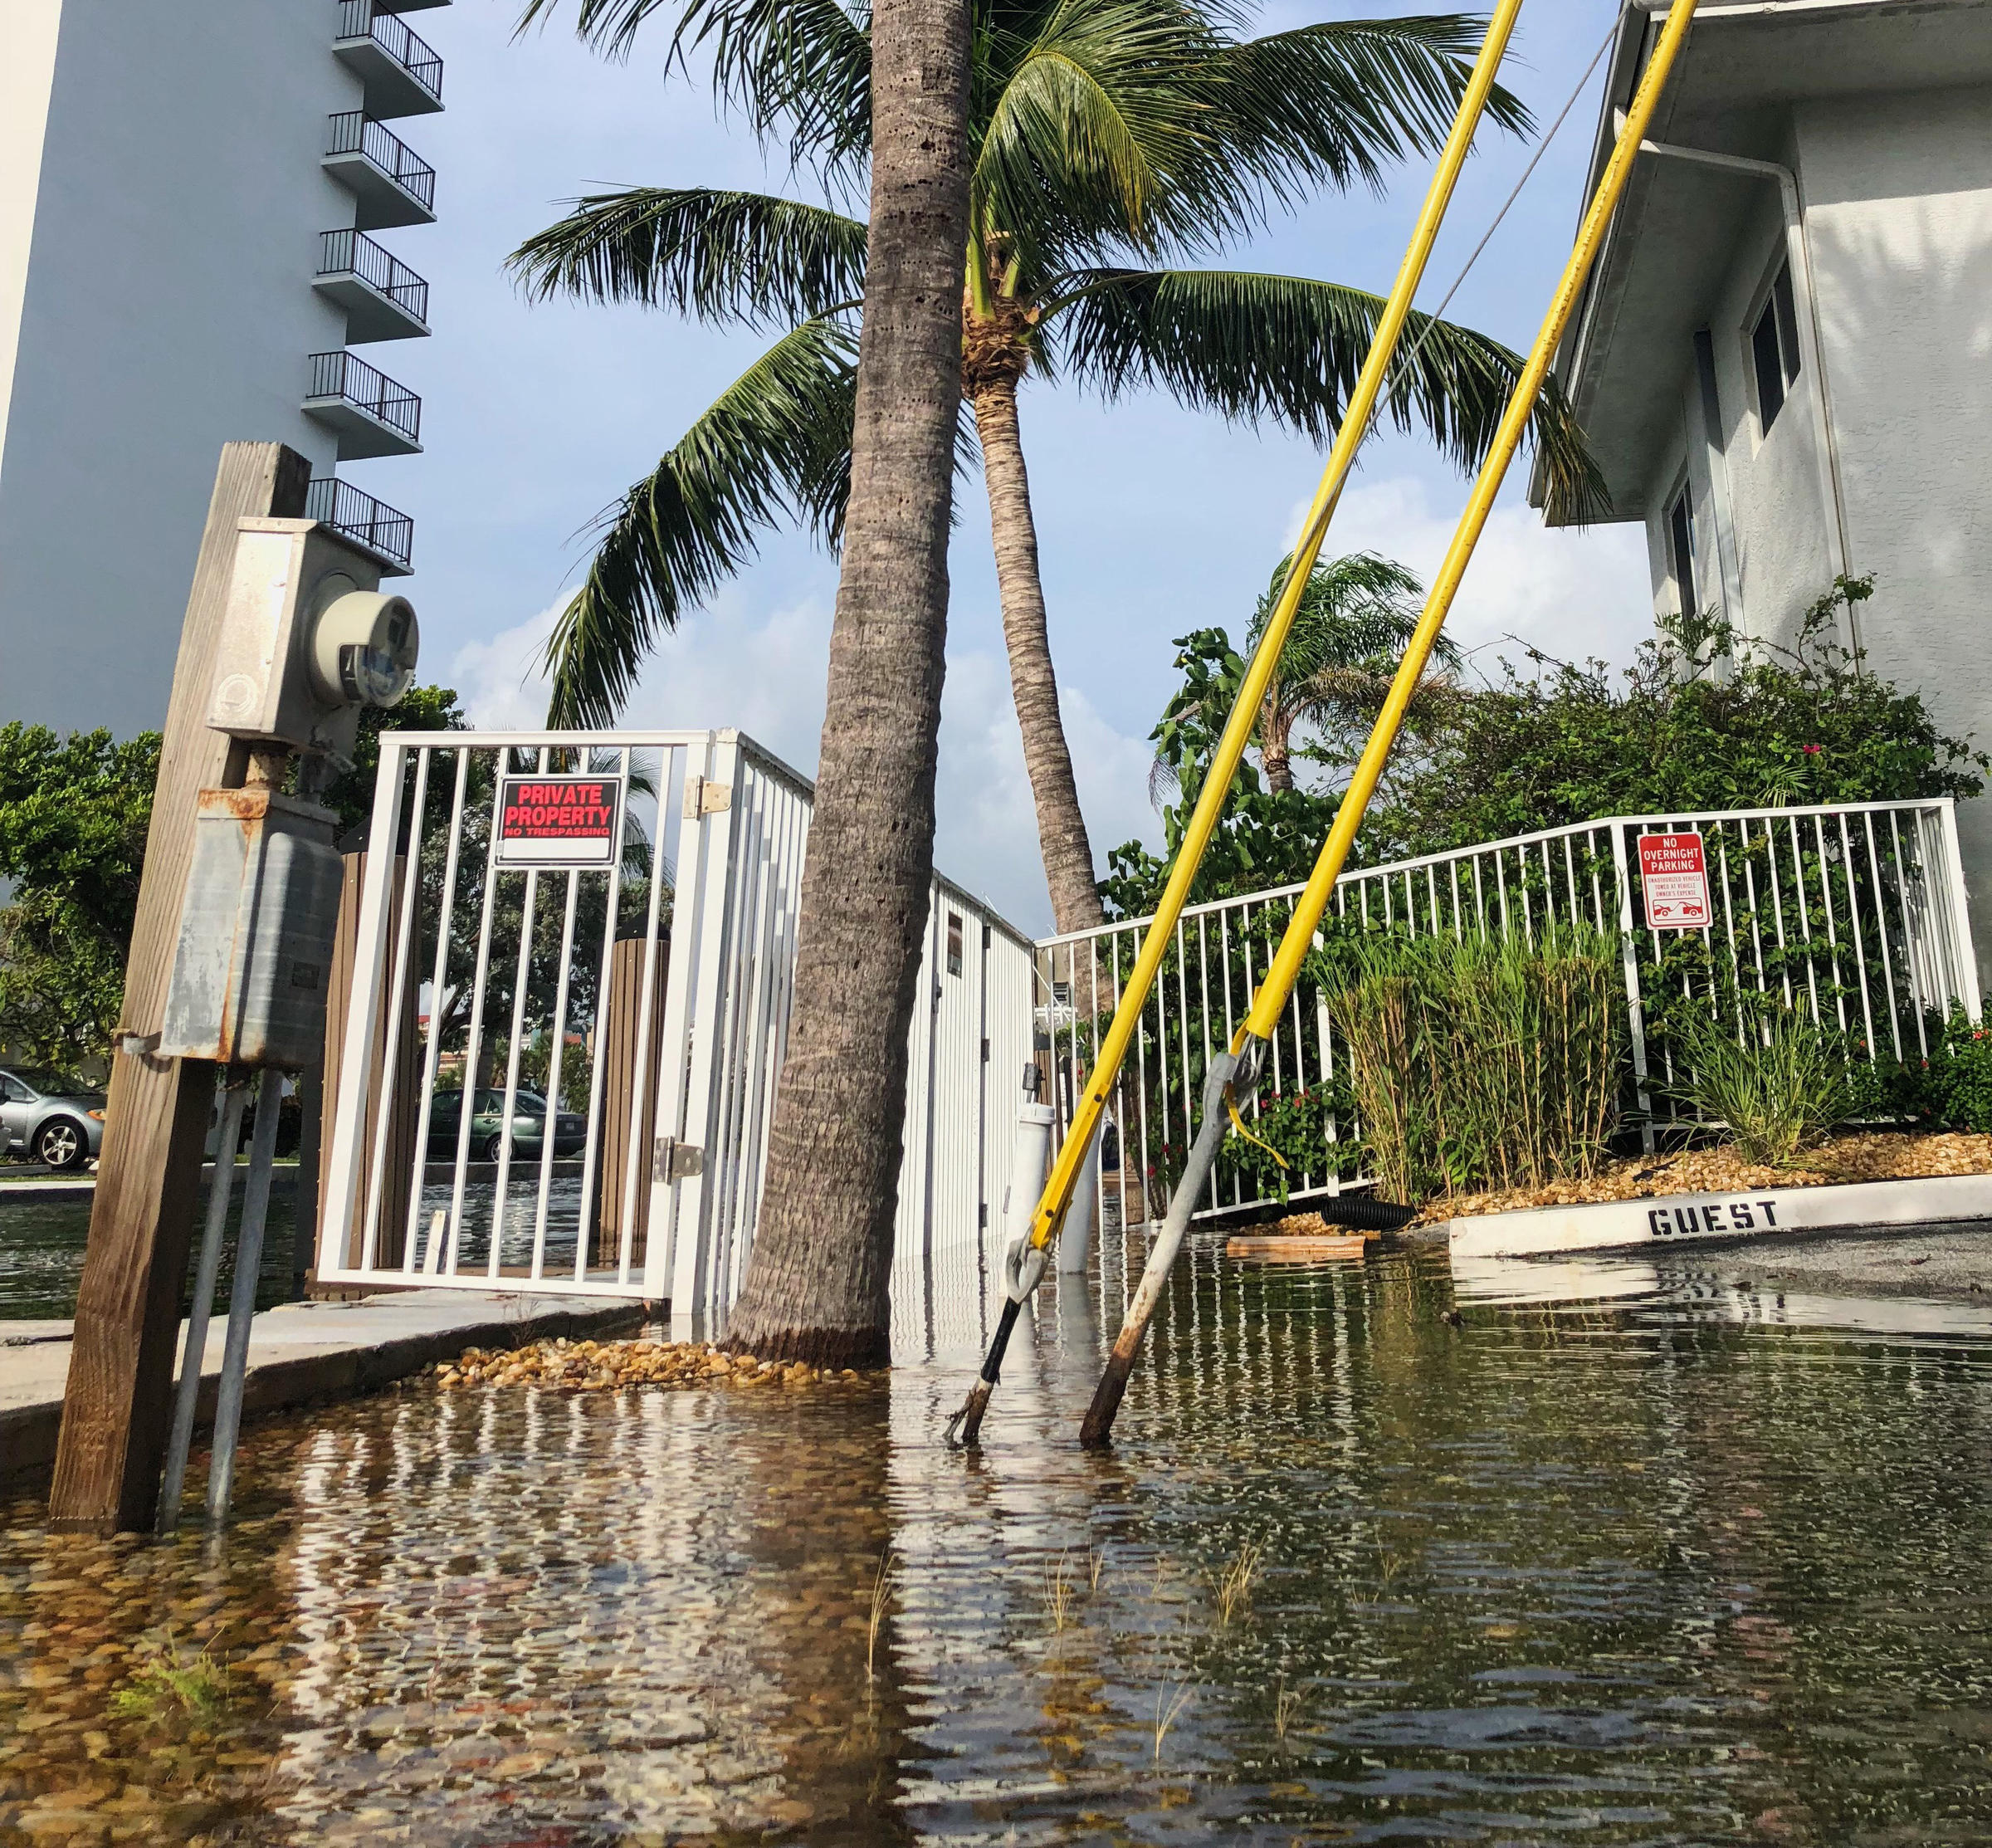 The Marina Off C Drive In Pompano Beach Flooded On North Side Of Street During King Tides Oct 9 2018